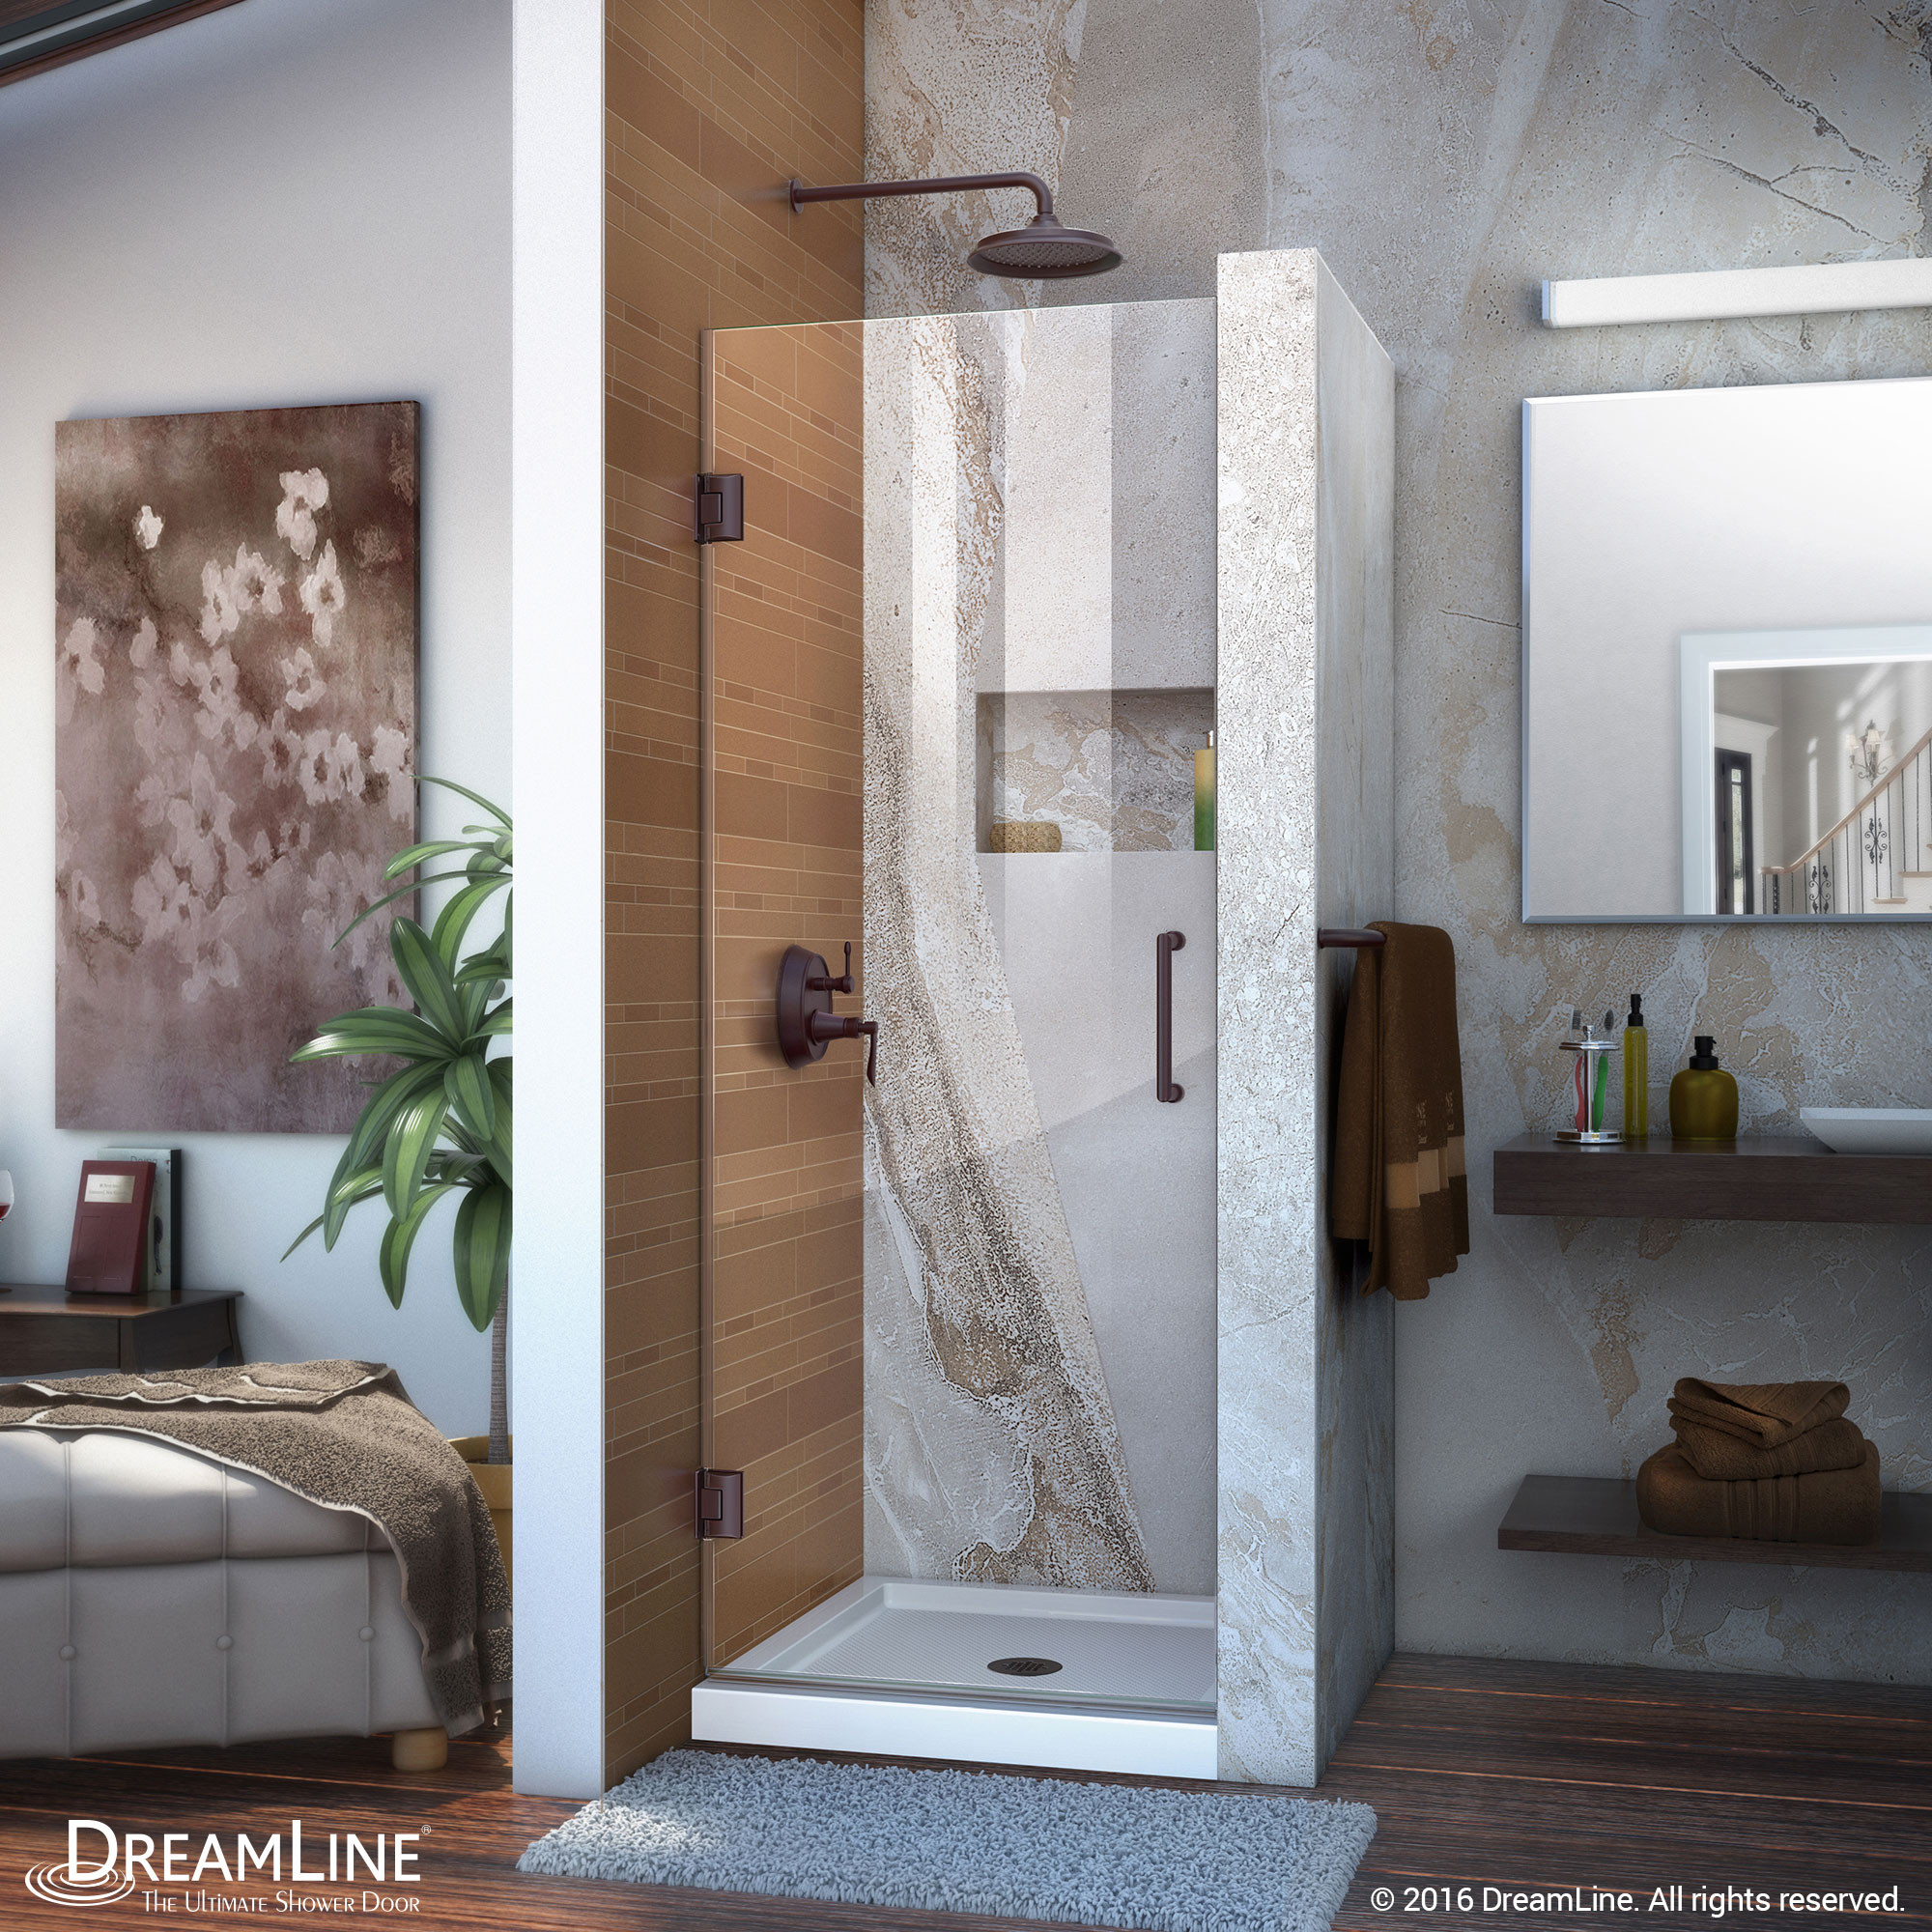 Dreamline SHDR-20307210F-06 Oil Rubbed Bronze 30 x 72 Frameless Shower Door